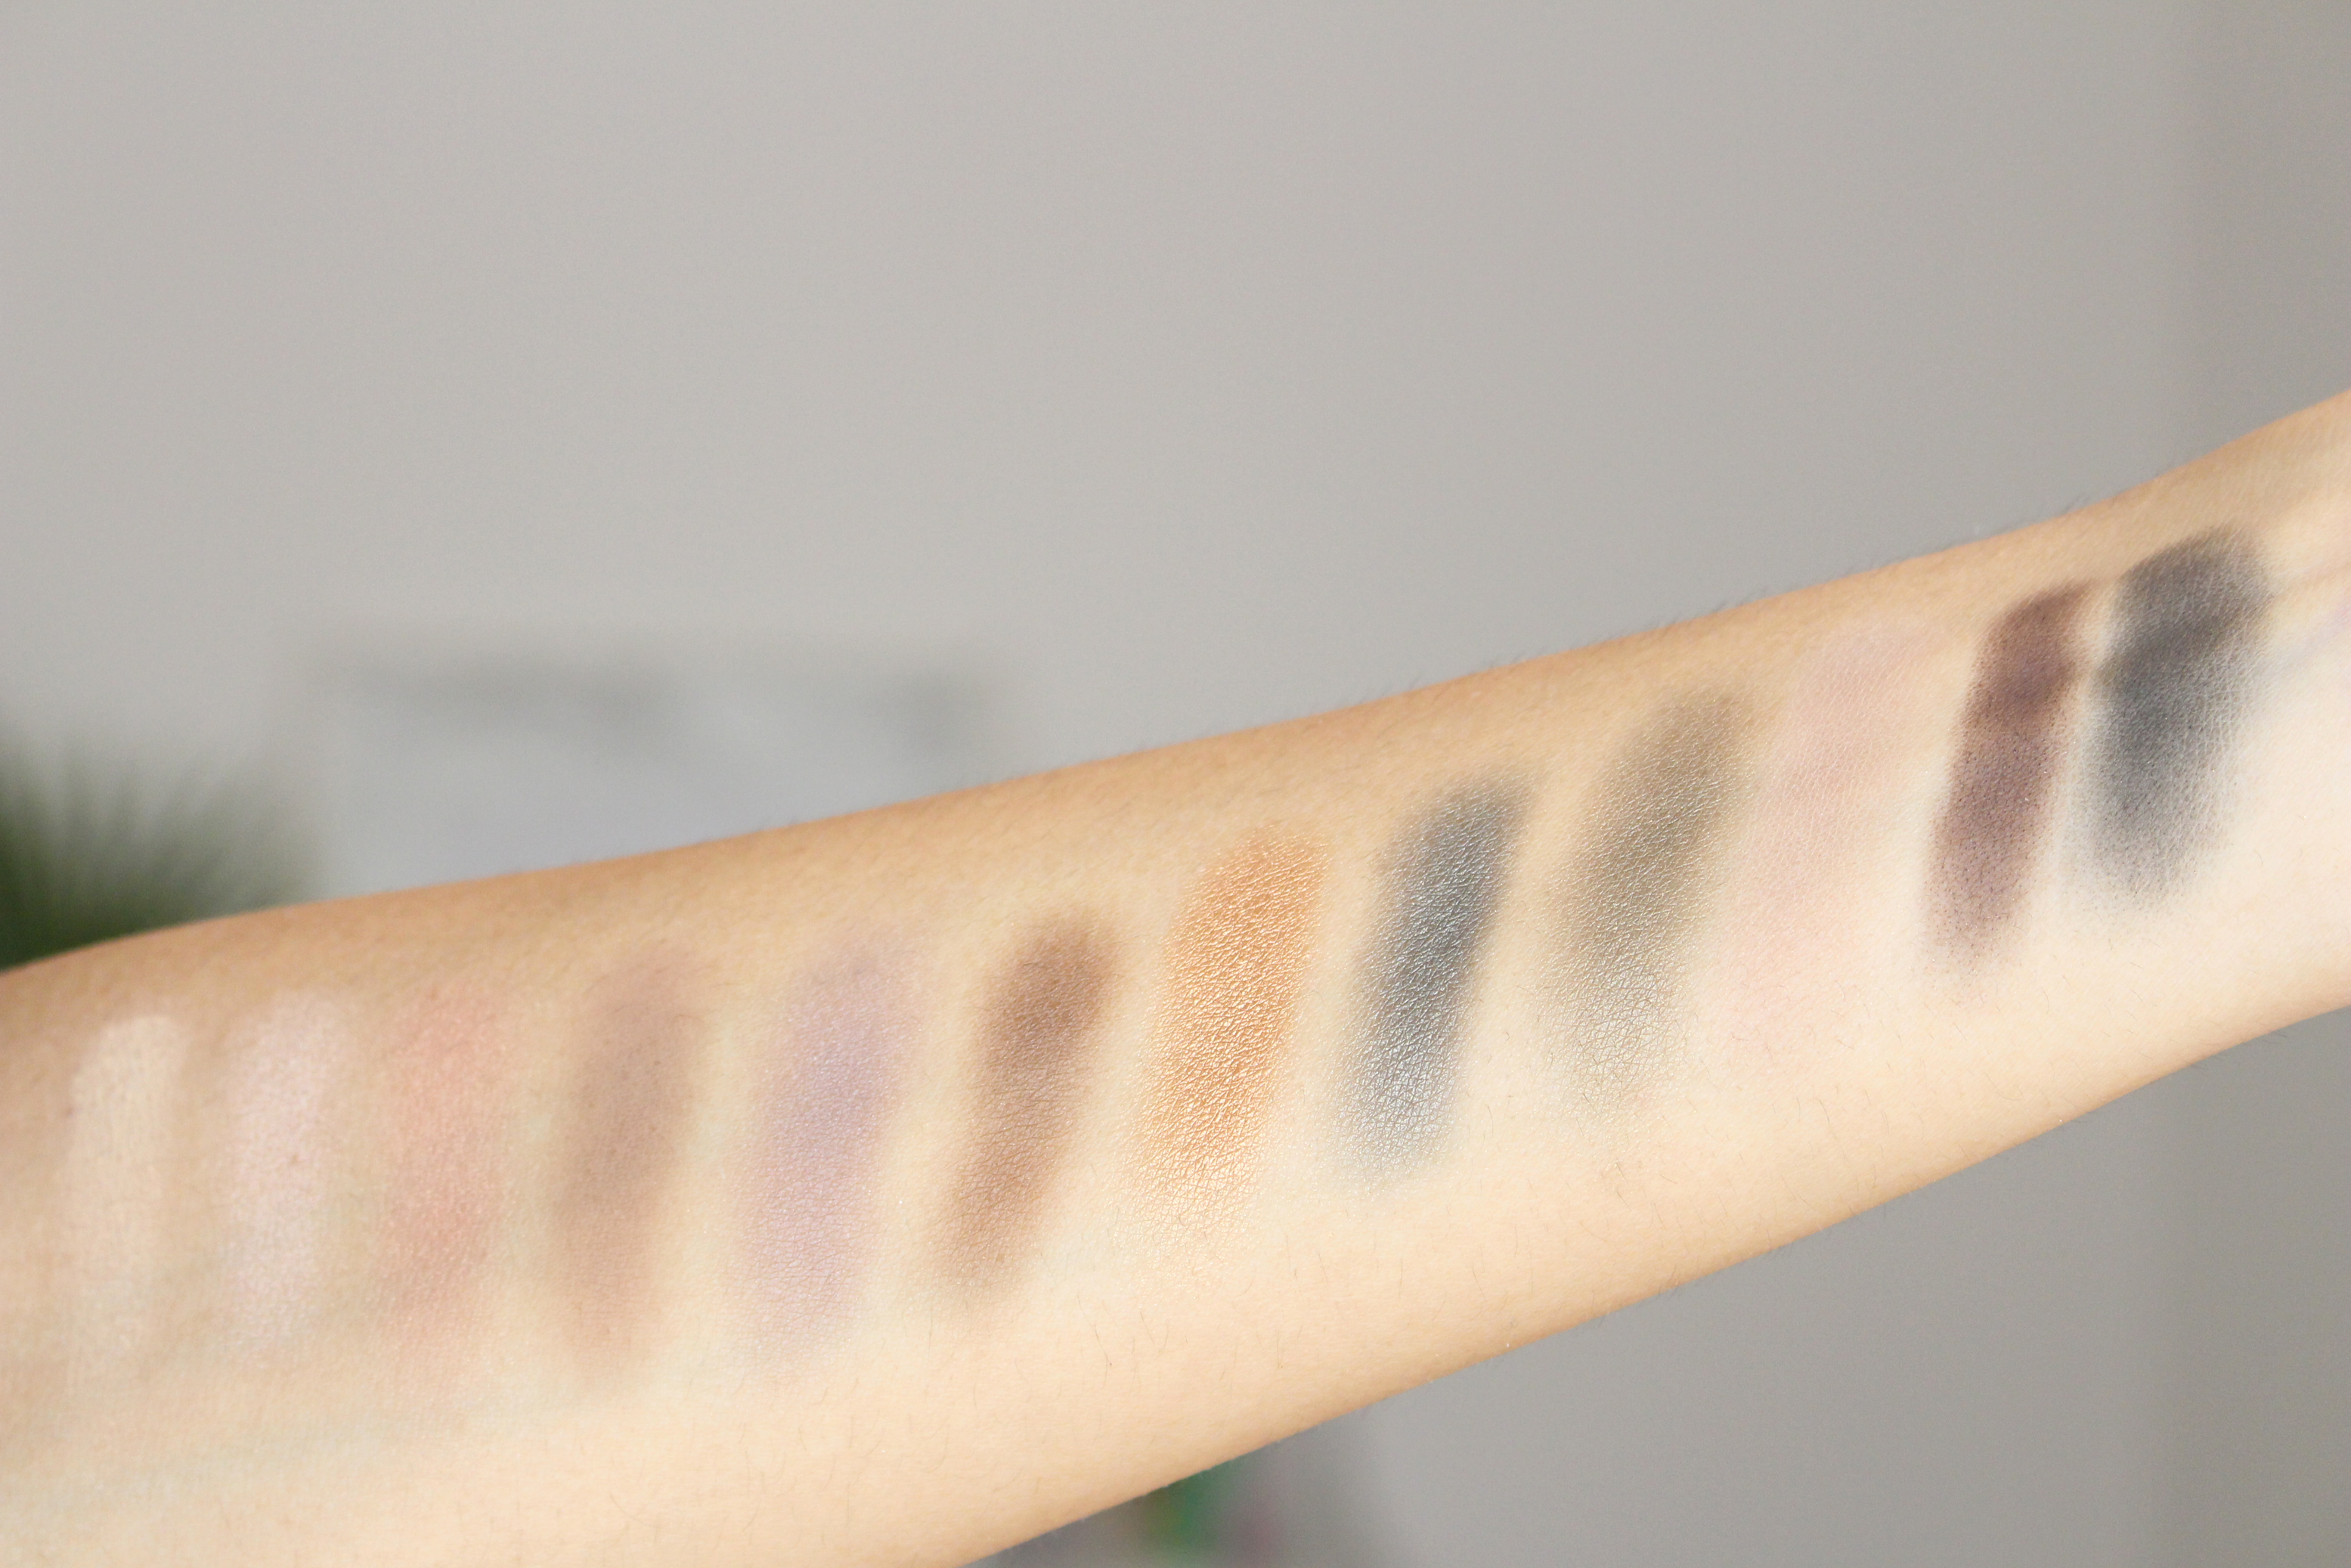 palette bio eye essential 1 couleur caramel